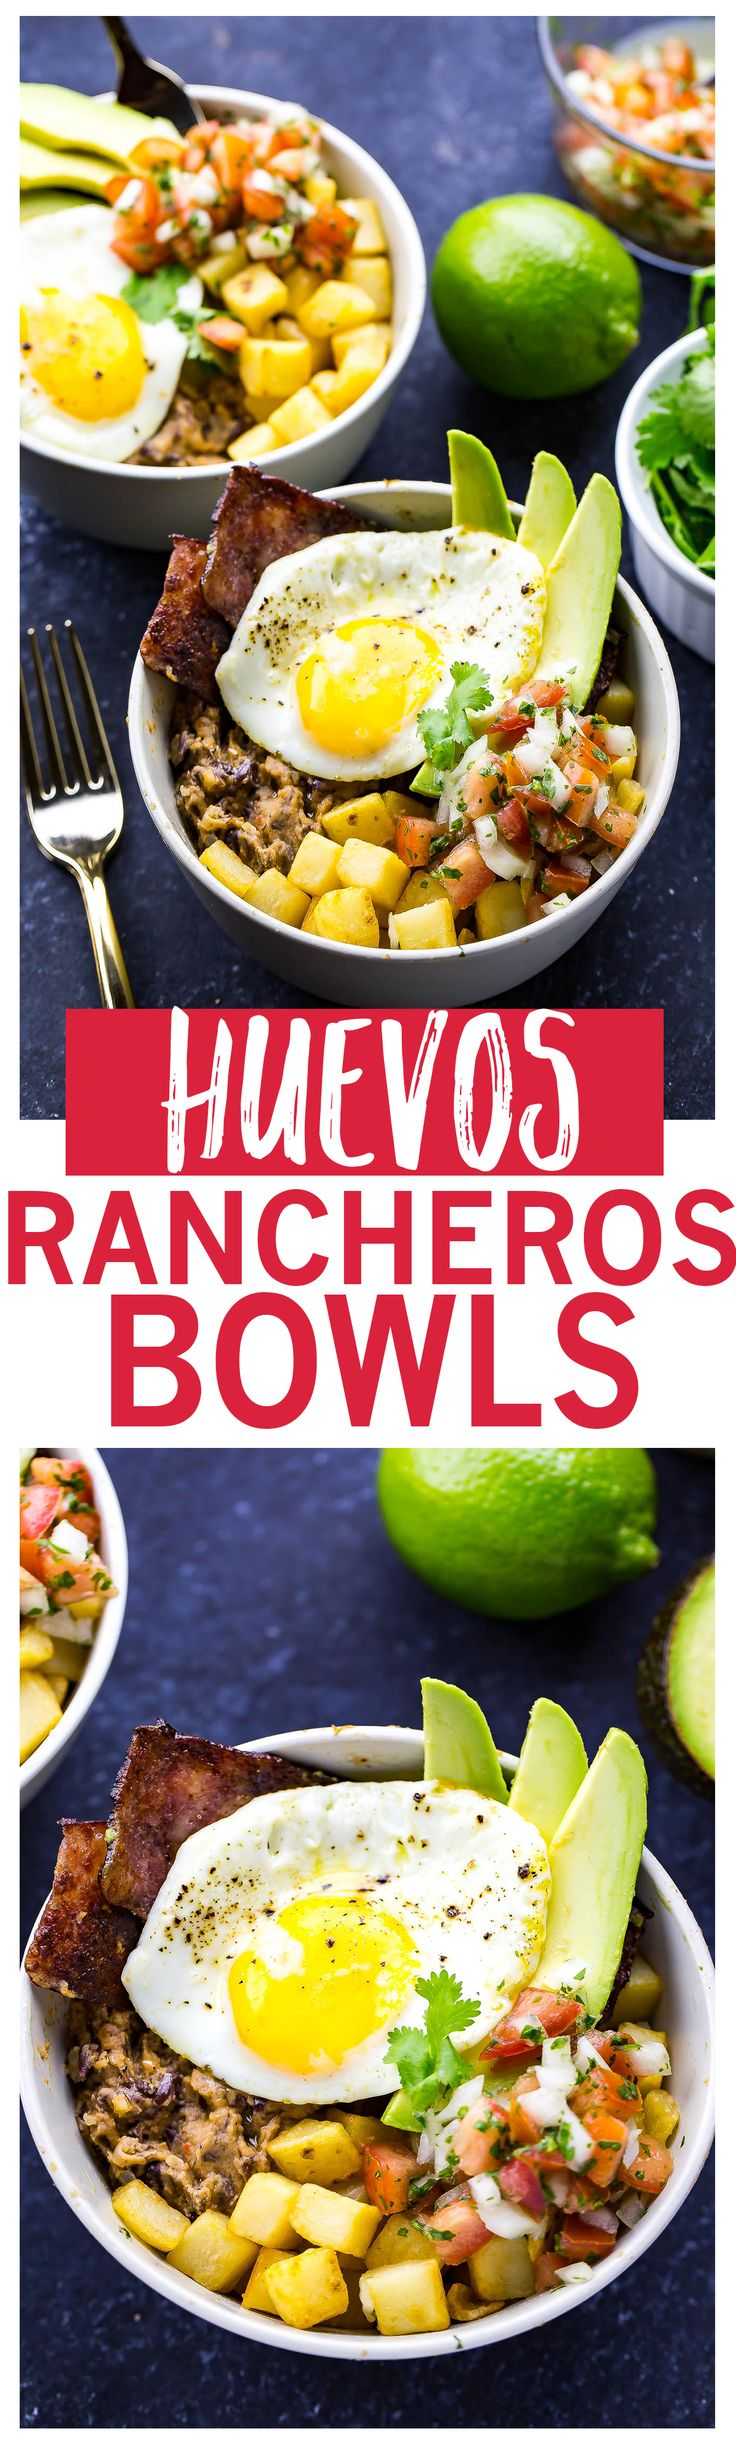 Huevos Rancheros Breakfast Bowls are a delicious brunch idea and the kind of breakfast you'll want to wake up to every morning!